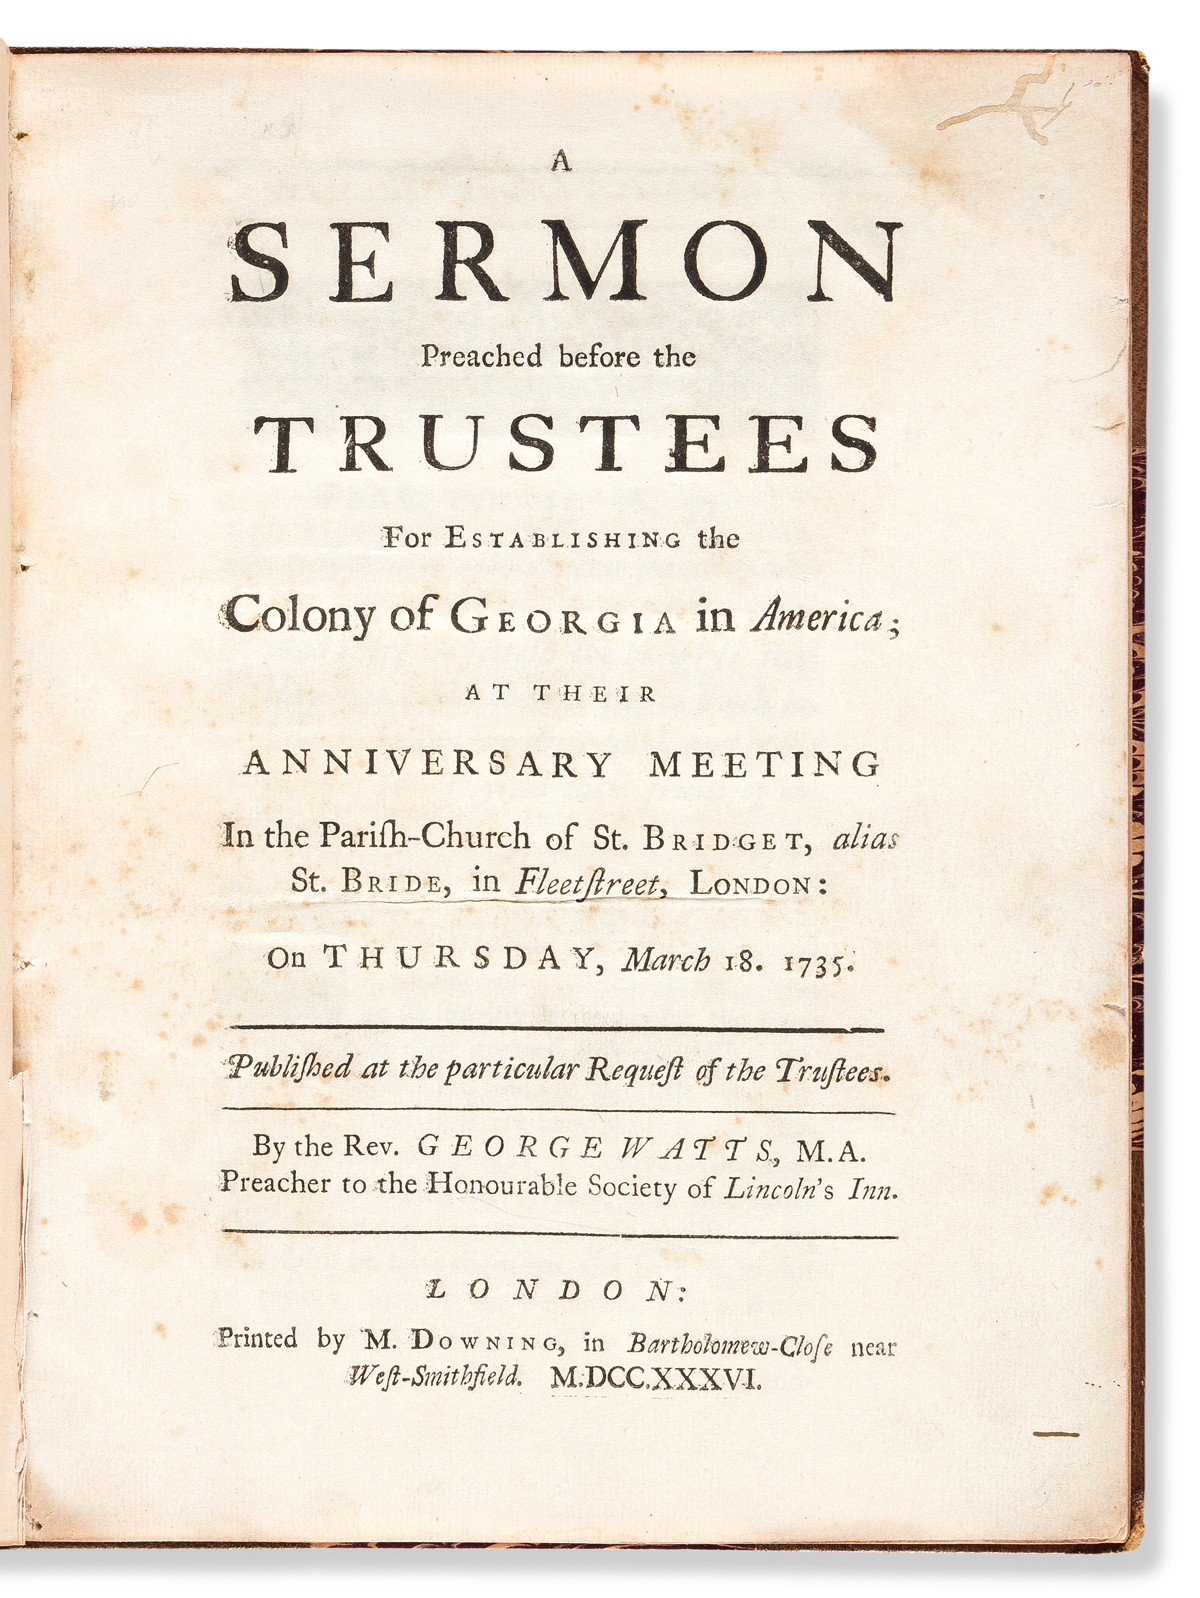 (GEORGIA.) George Watts. A Sermon Preached Before the Trustees for Establishing the Colony of Georgia in America.